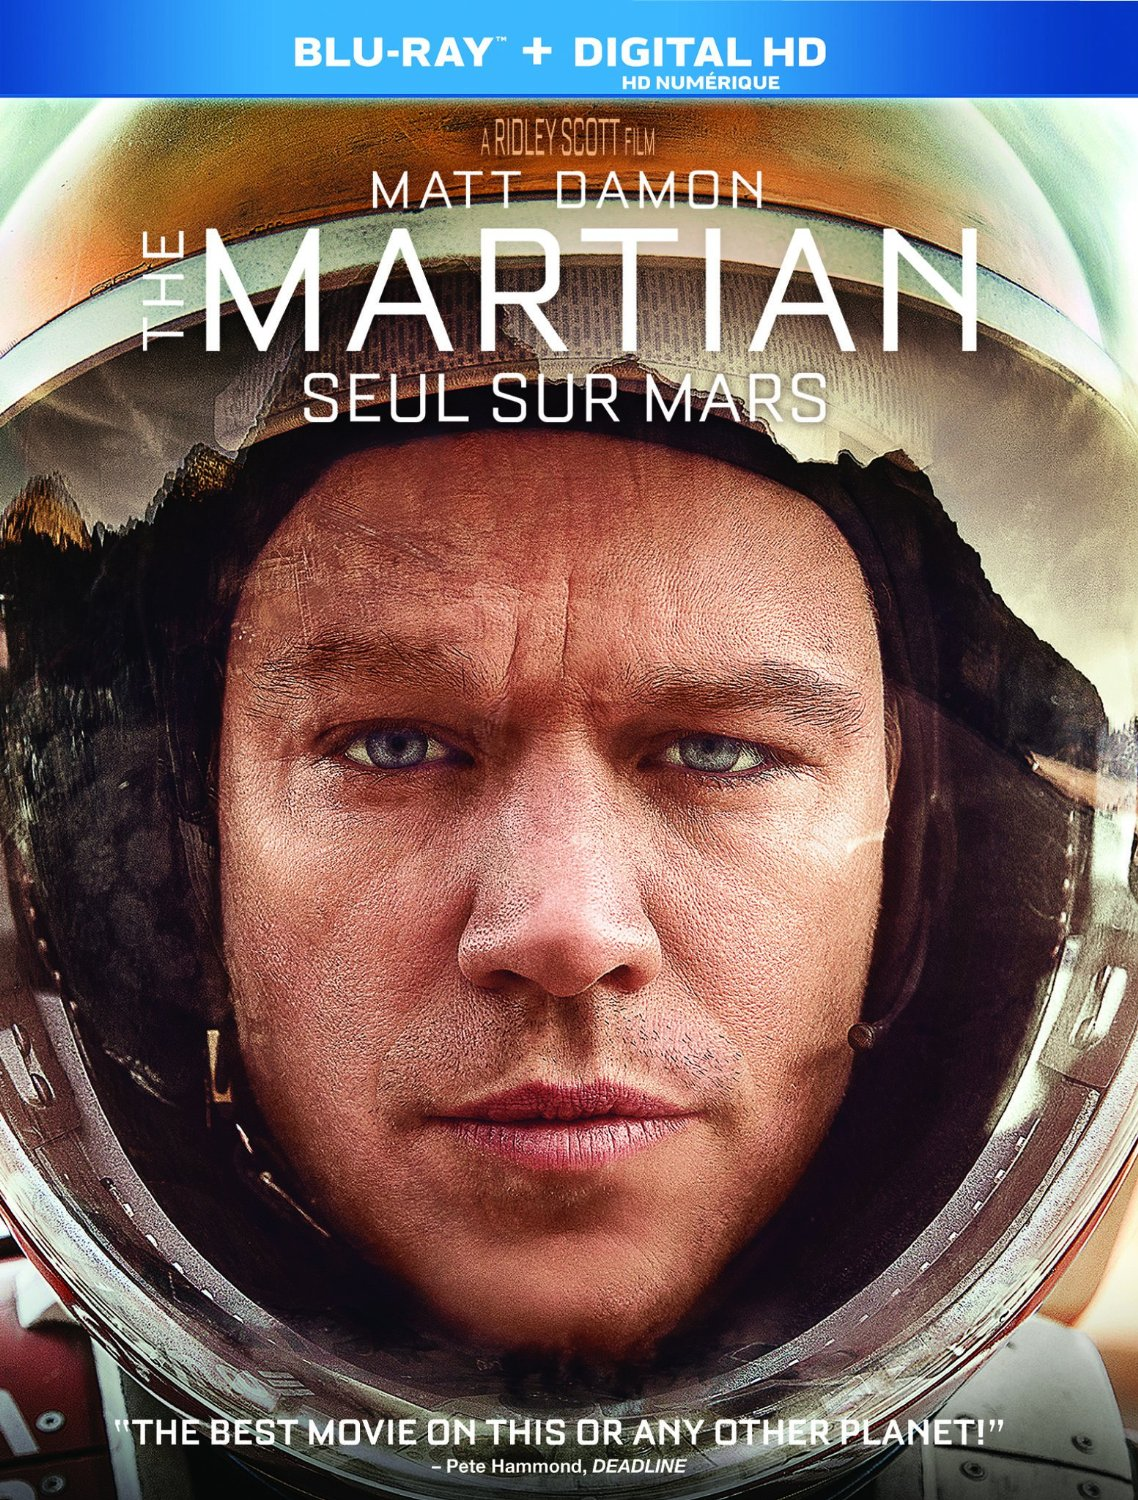 The Martian DVD/Blu-ray